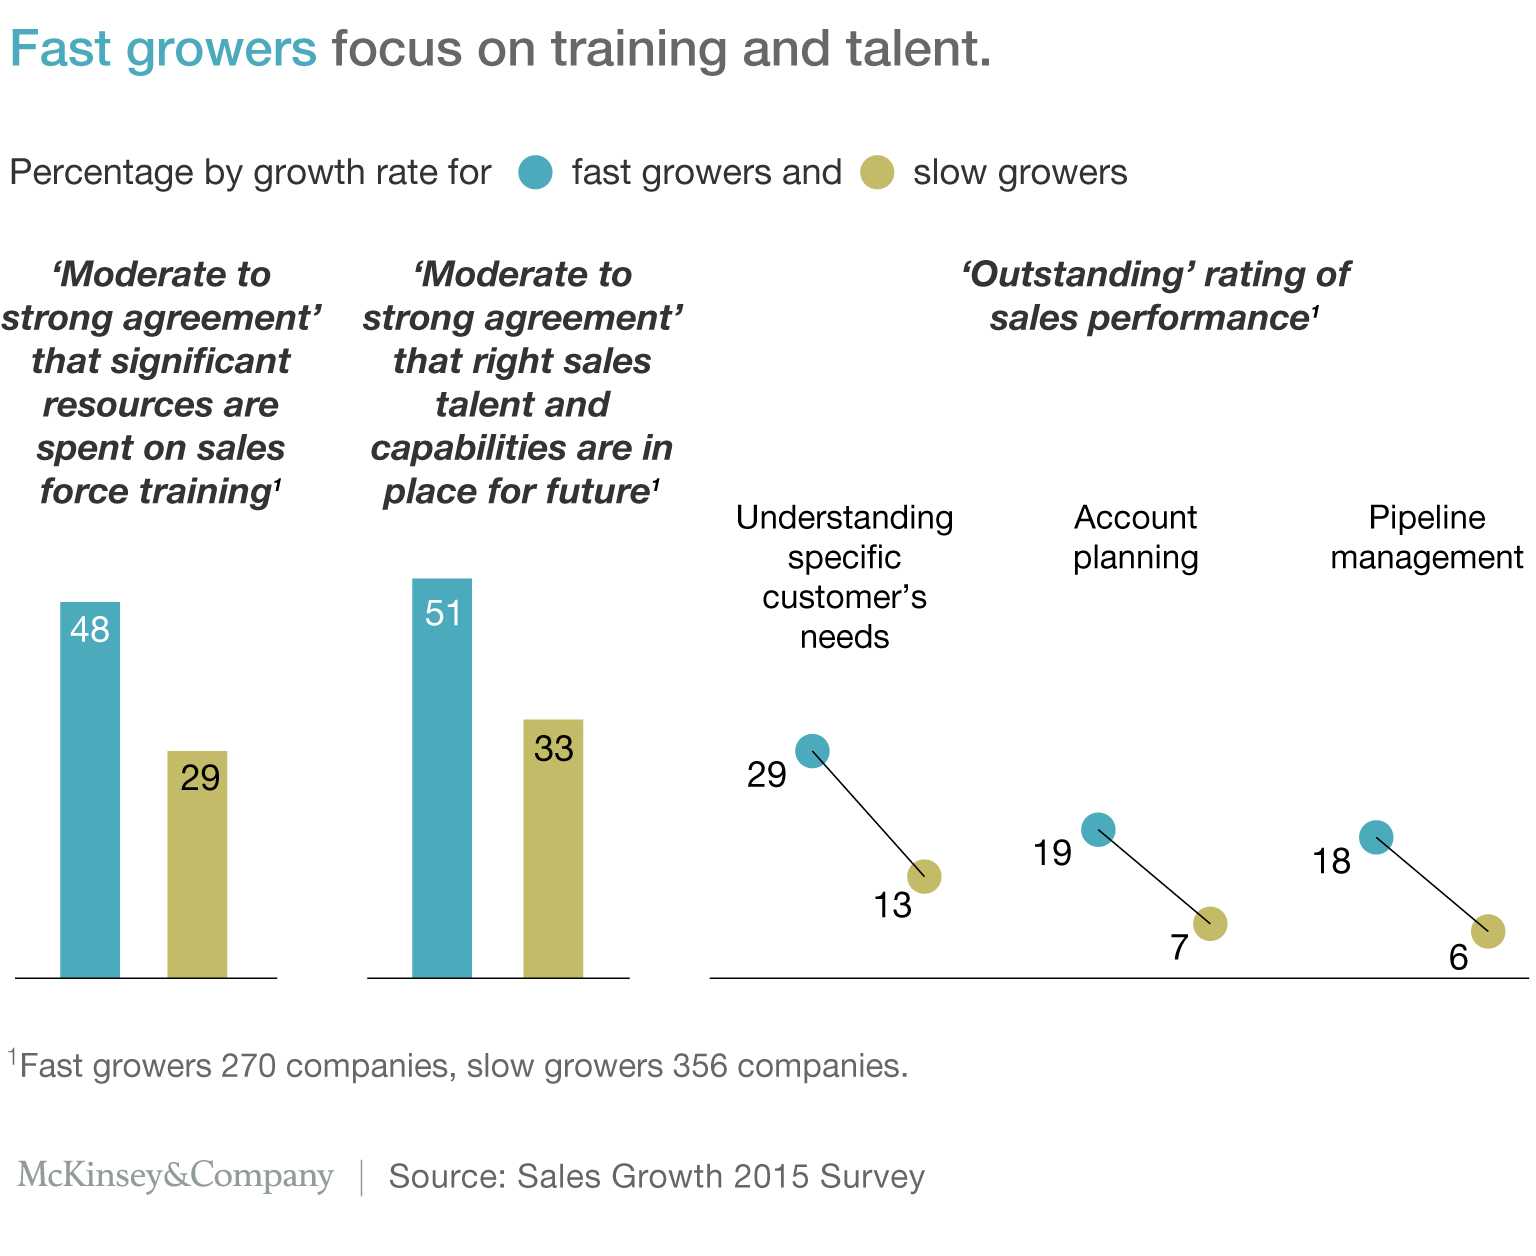 Exhibit 4: Fast growers focus on training and talent